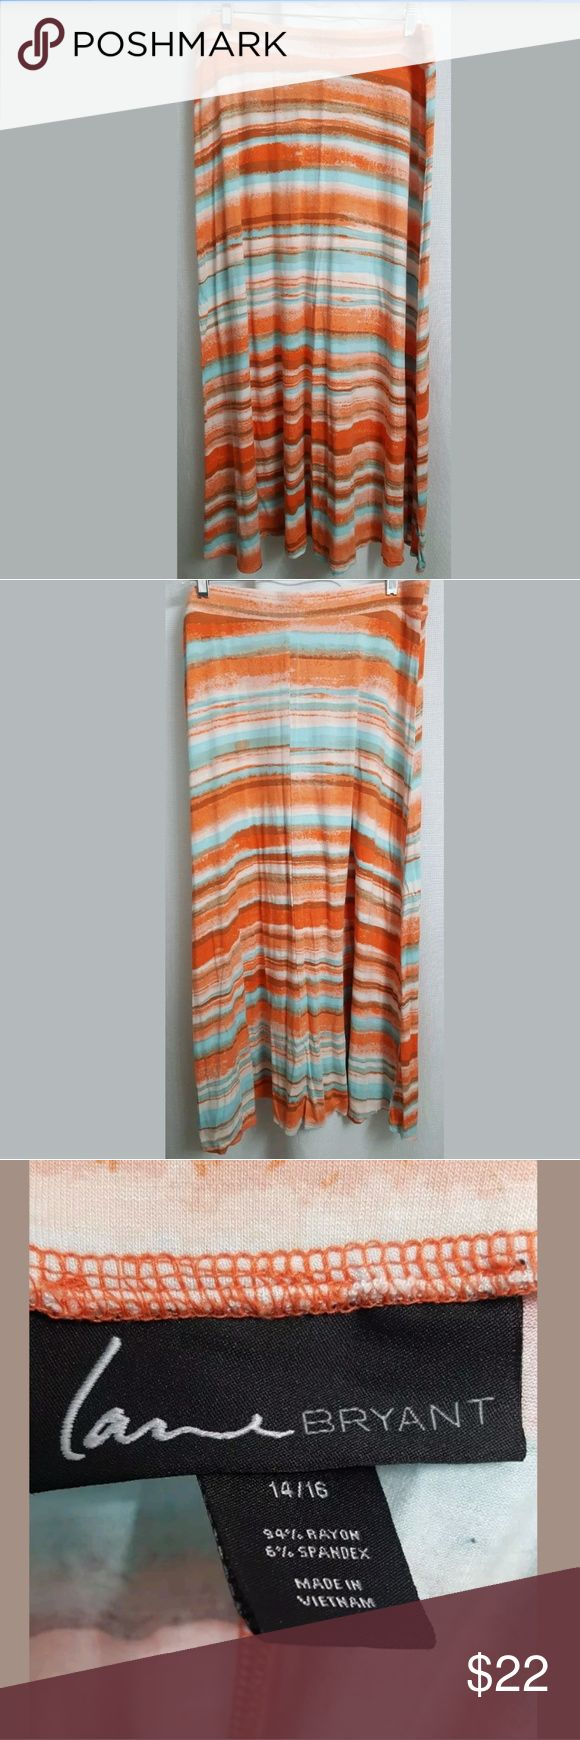 """Lane Bryant Sunset Striped Maxi Skirt sz 14-16 This is a Lane Bryant Sunset Striped Maxi Skirt sz 14-16. There are no stains, or holes.  Measurements: (When laid flat)  Waist: 35"""" Length: 40.5""""  Product material:   94% Rayon 6% Spandex  Inventory #: Lane Bryant Skirts Maxi"""